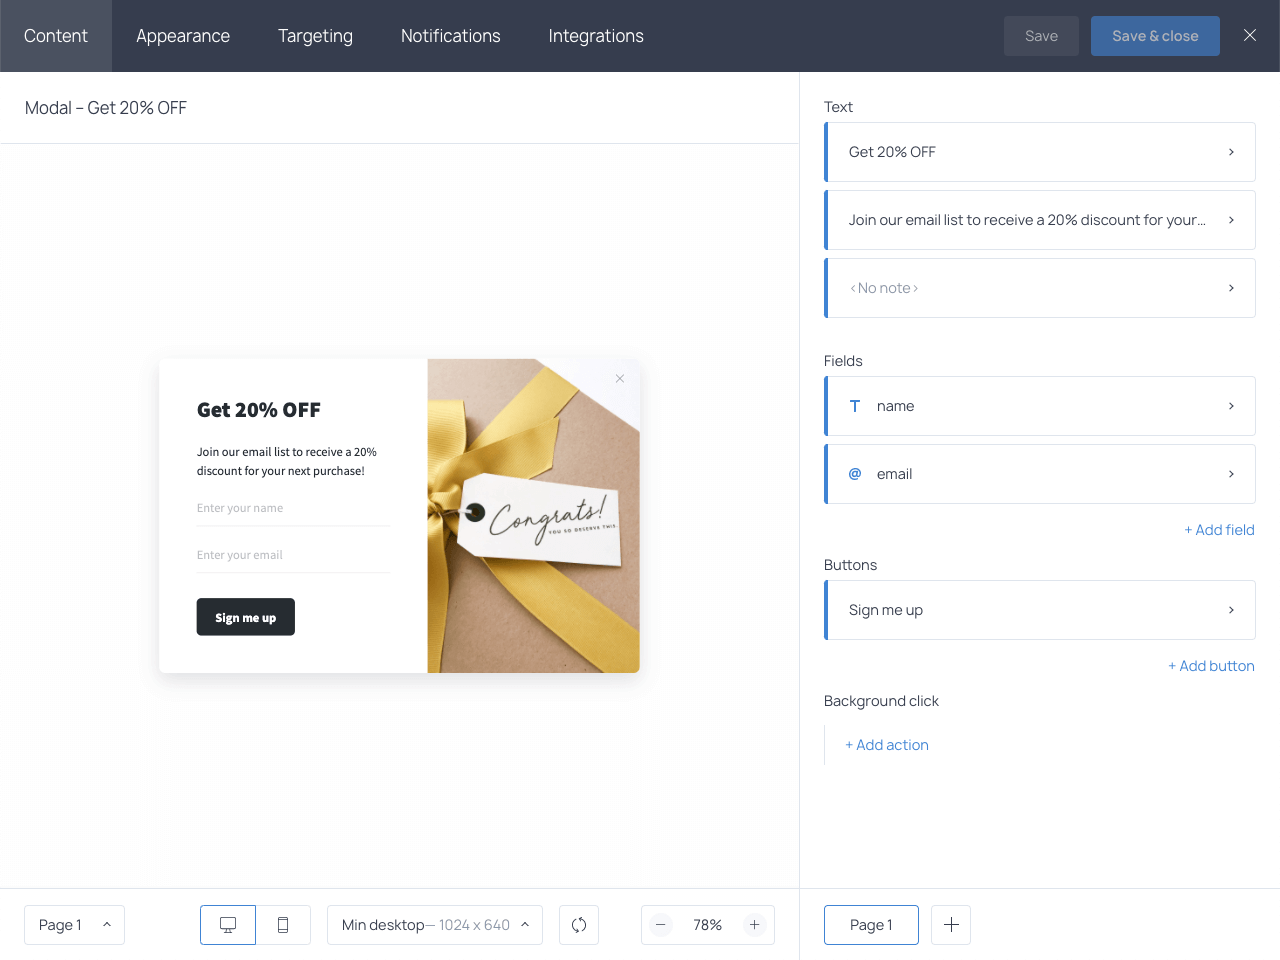 Getsitecontrol is a WordPress ecommerce plugin to help you create forms and popups